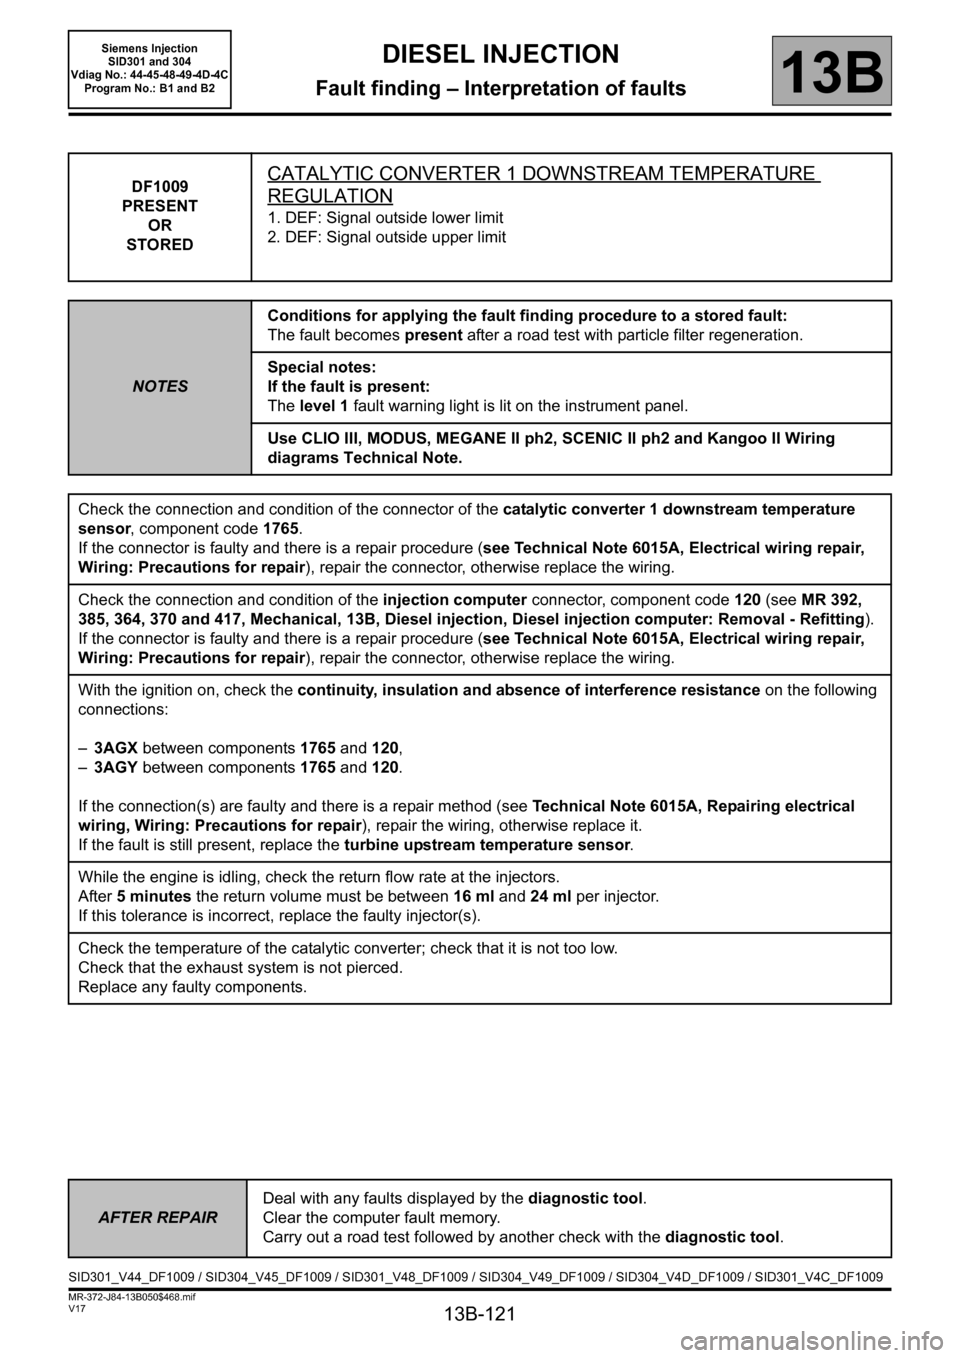 RENAULT SCENIC 2011 J95 / 3.G Engine And Peripherals Siemens Injection Workshop Manual, Page 121